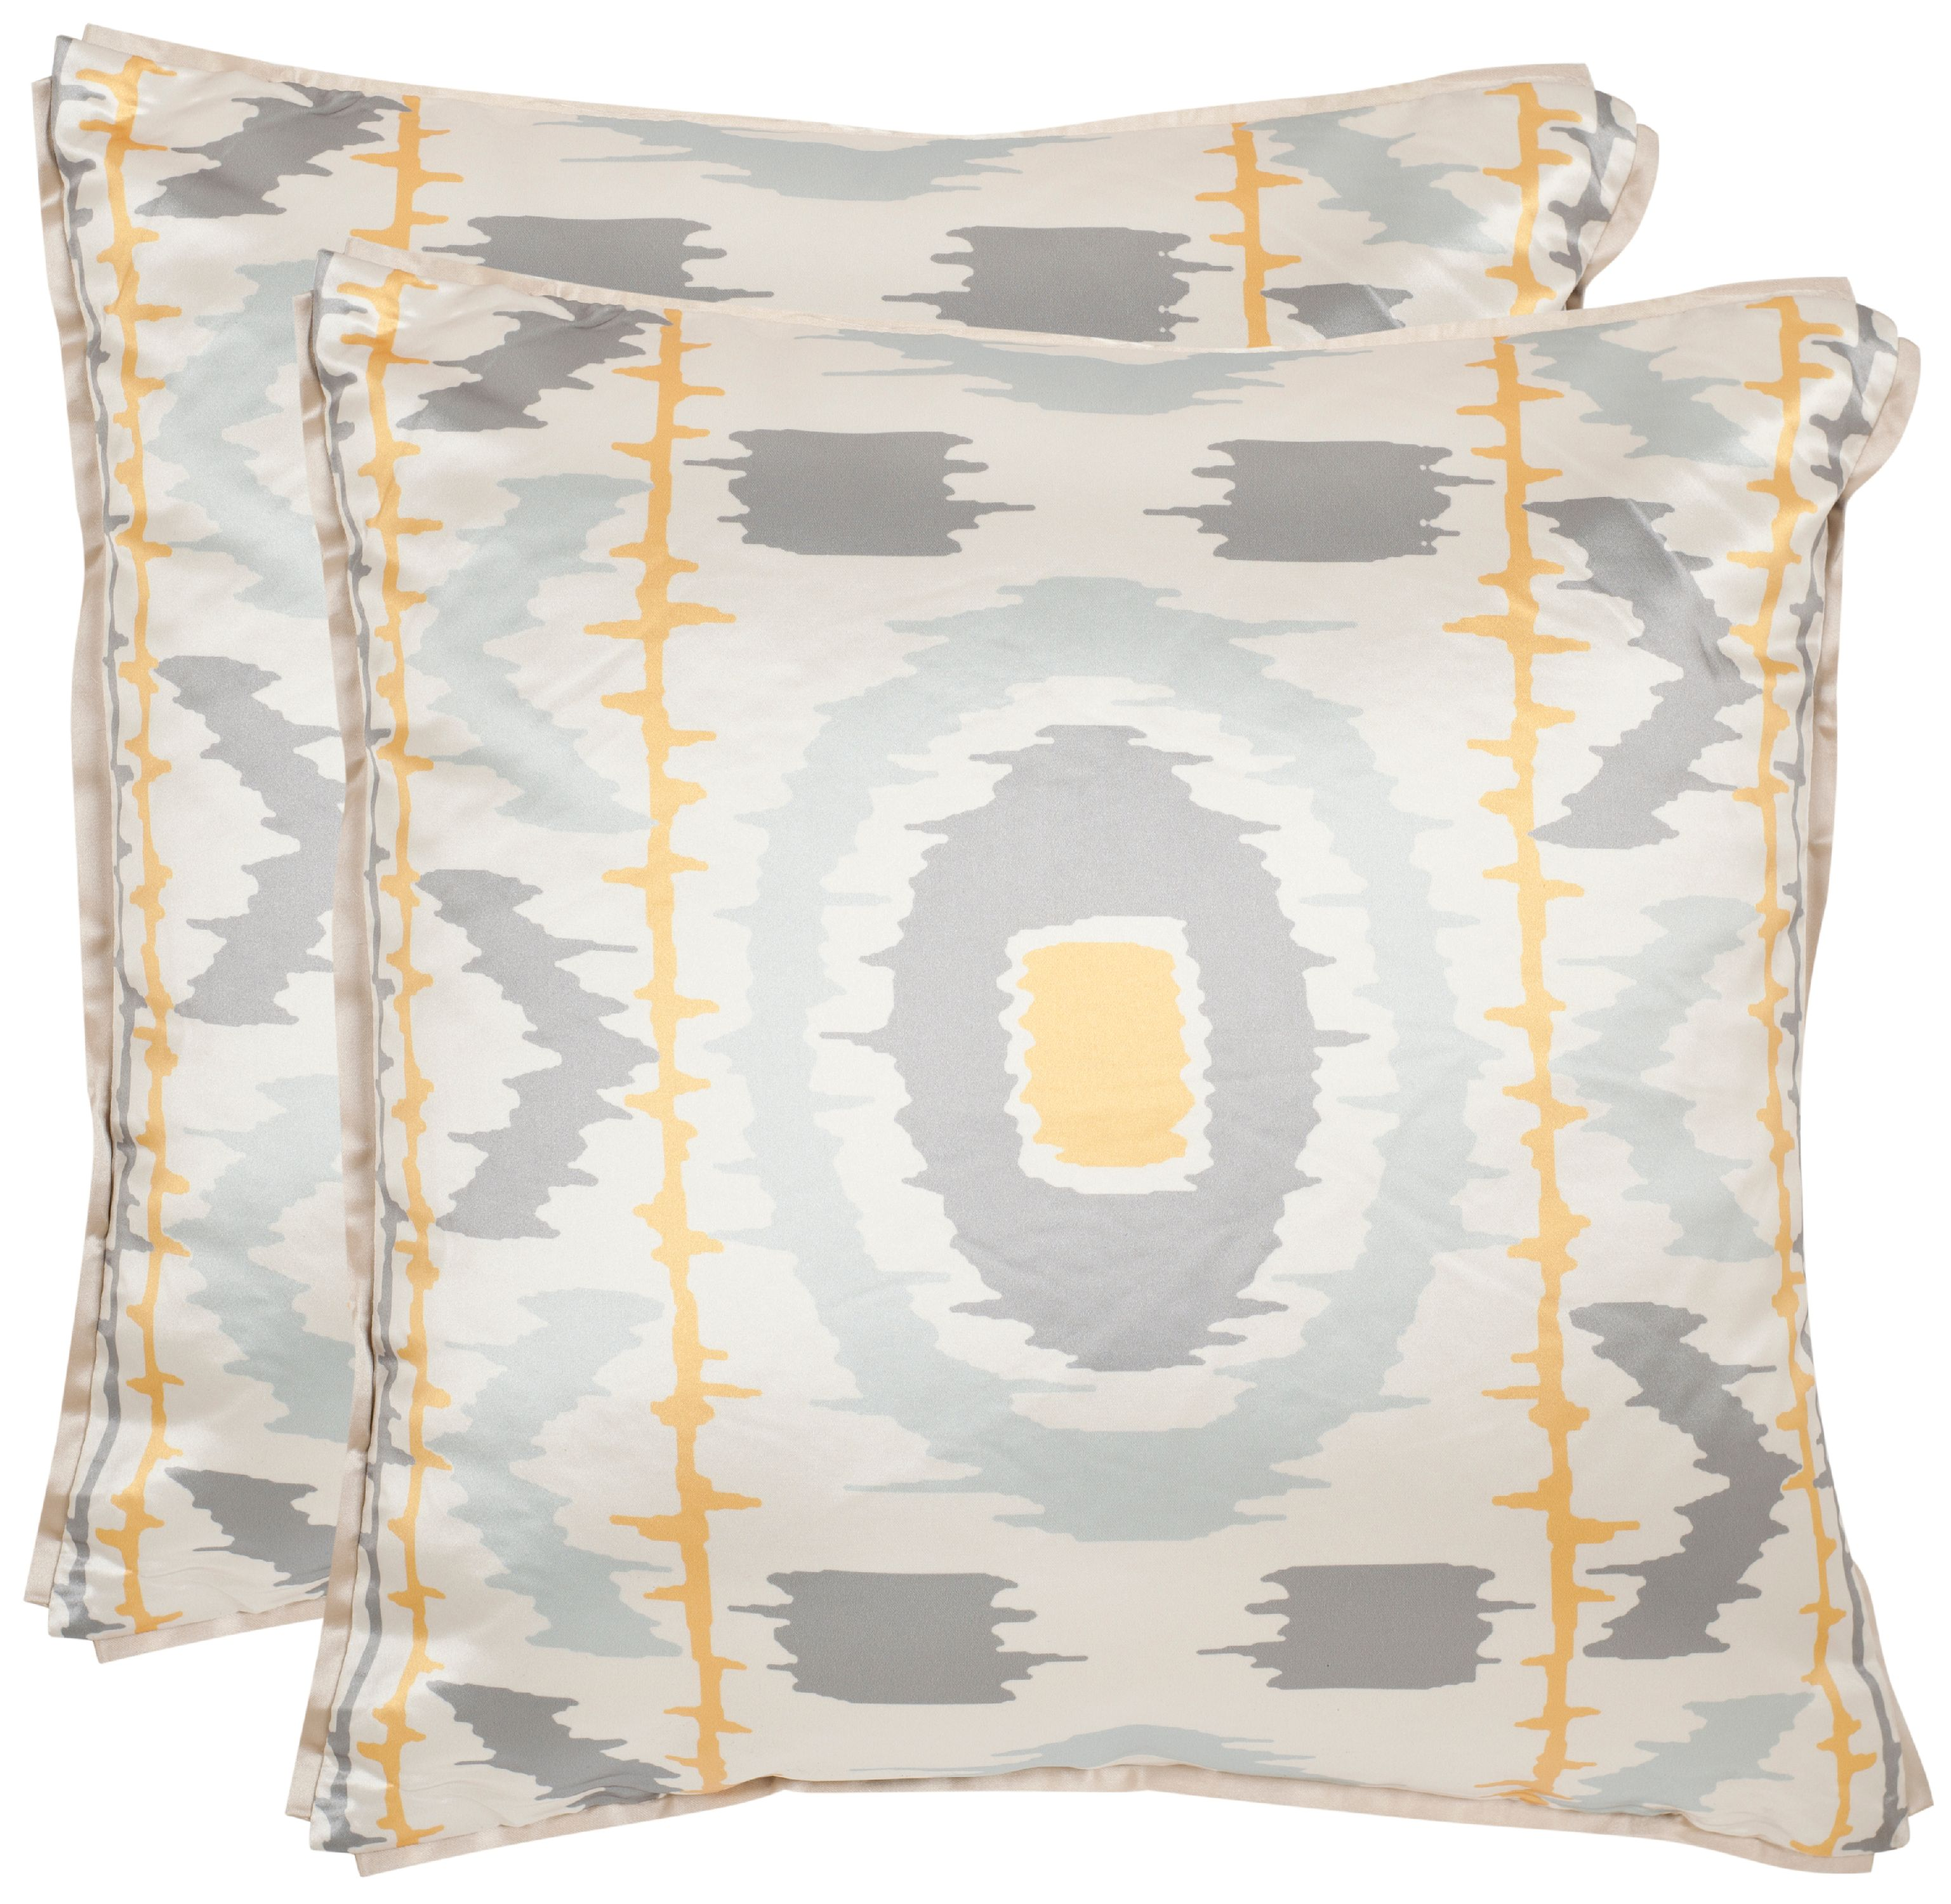 Safavieh Walton Ikat Pillow, Set of 2